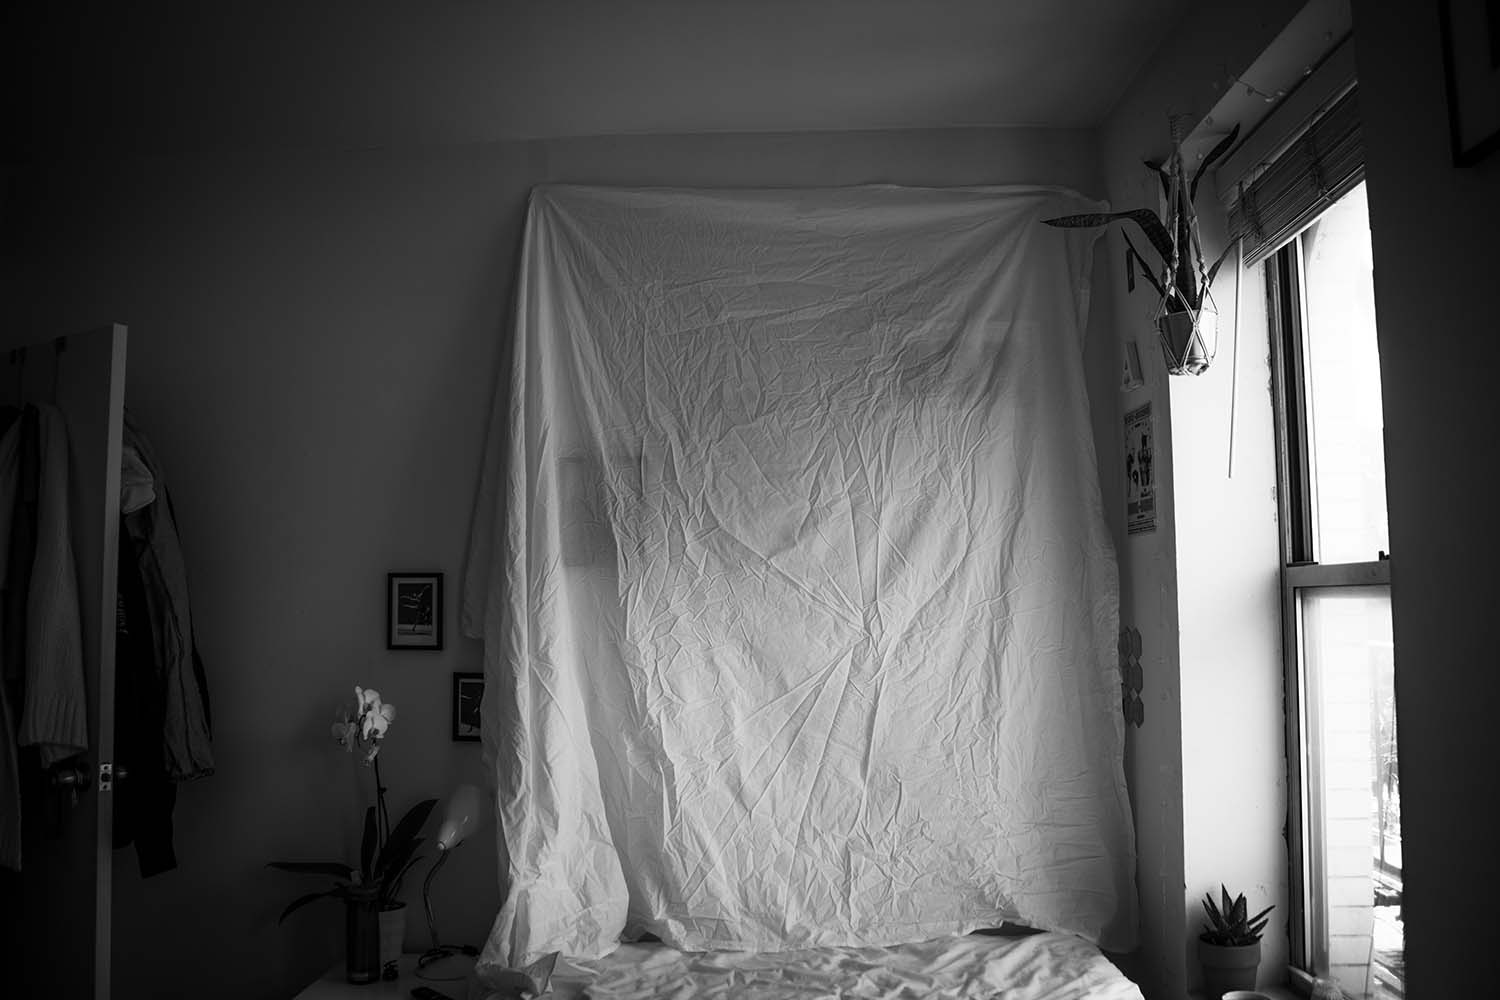 bw photo of bedroom window light on fabric